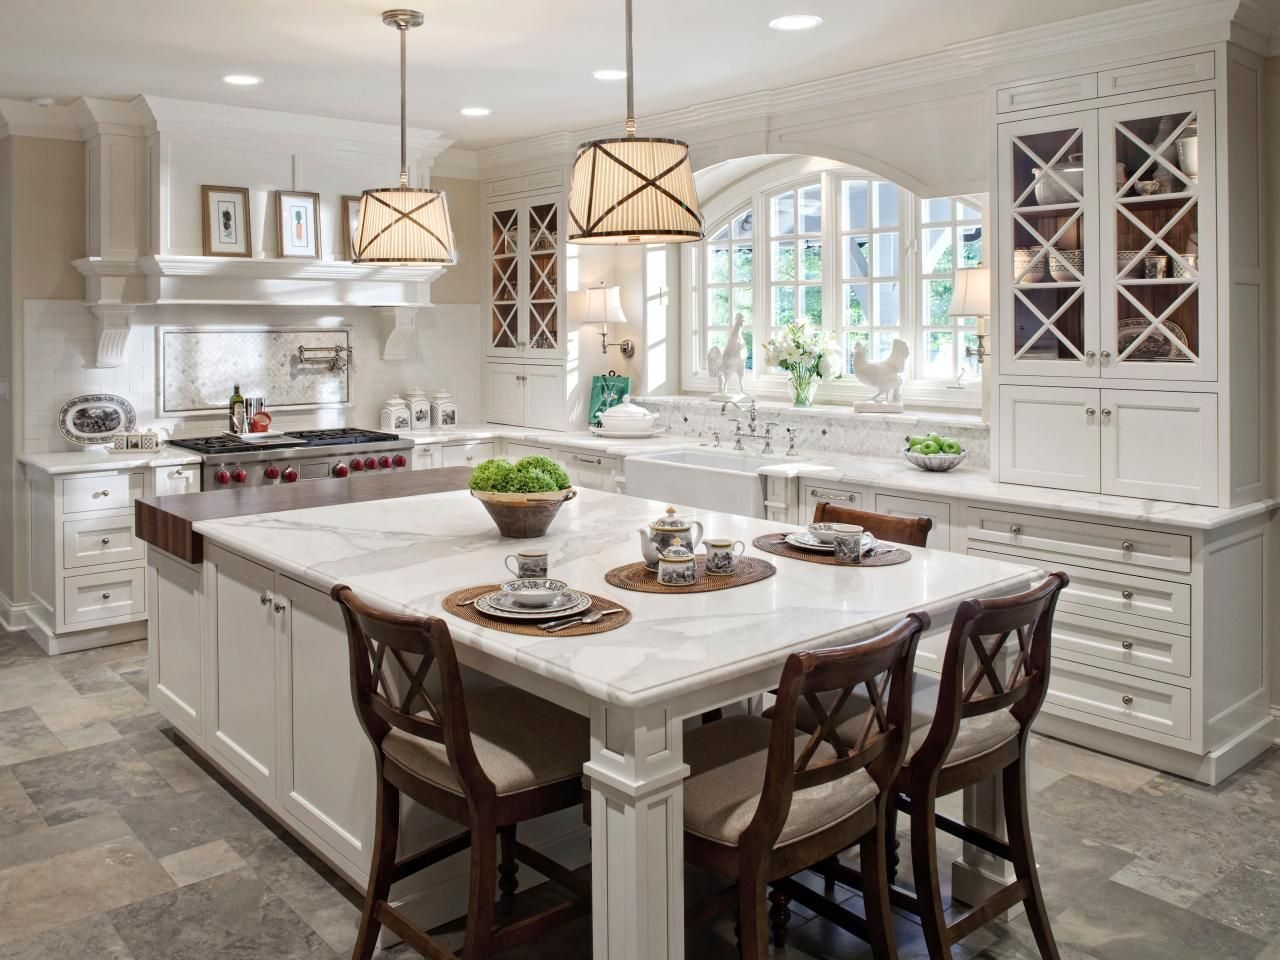 Mesmerizing Stunning Kitchen Island Design Ideas The